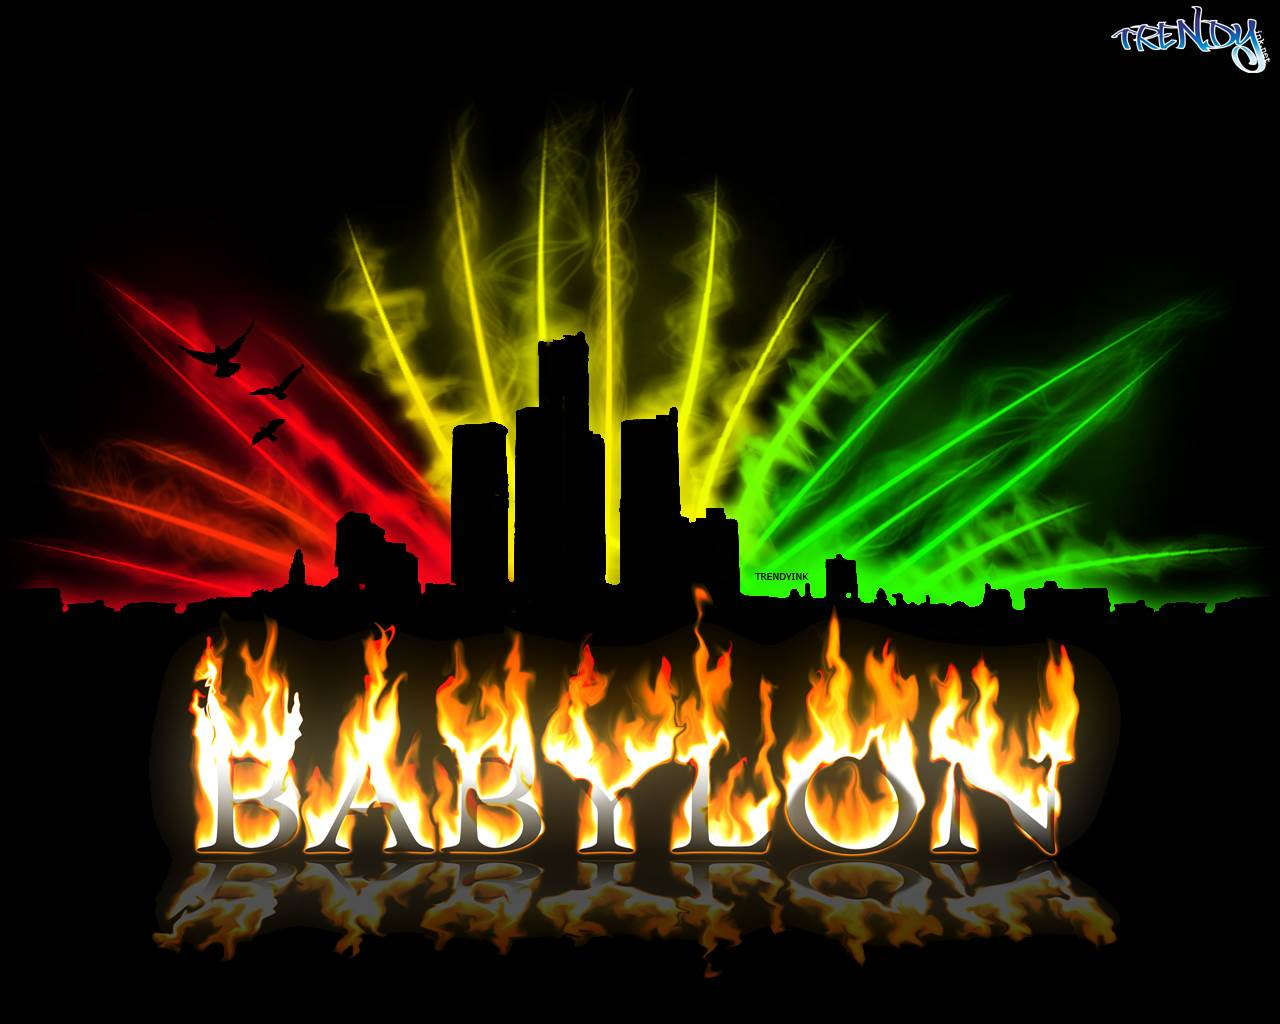 Rasta Color Backgrounds  Wallpaper  1280x1024